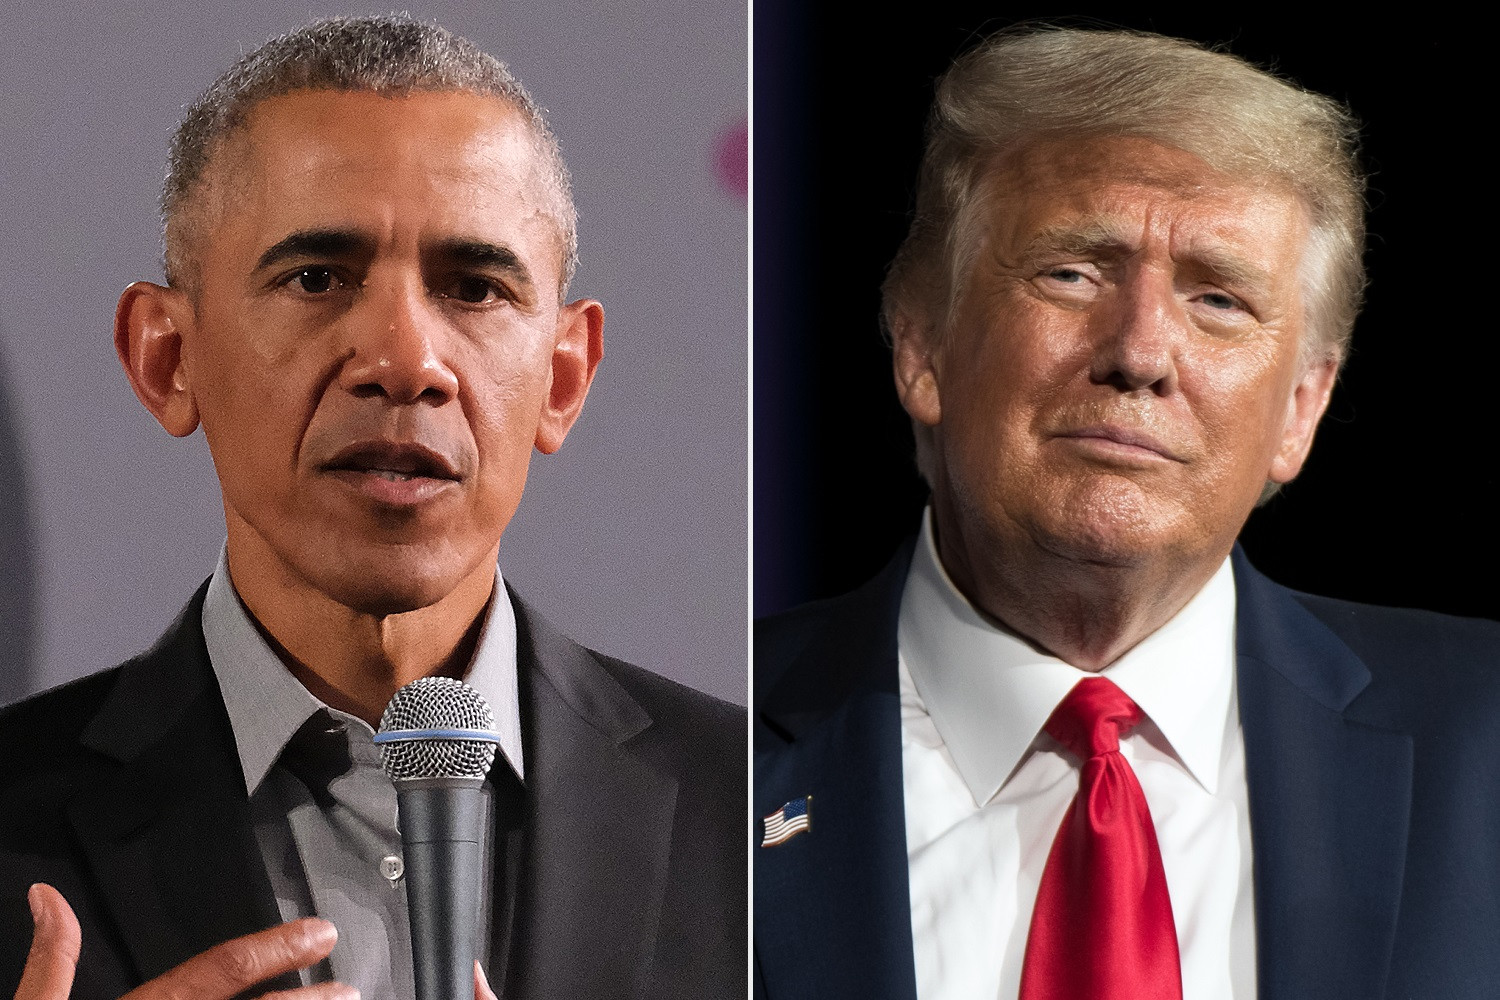 Barack Obama accuses Donald Trump of inciting violence at the U.S Capitol building